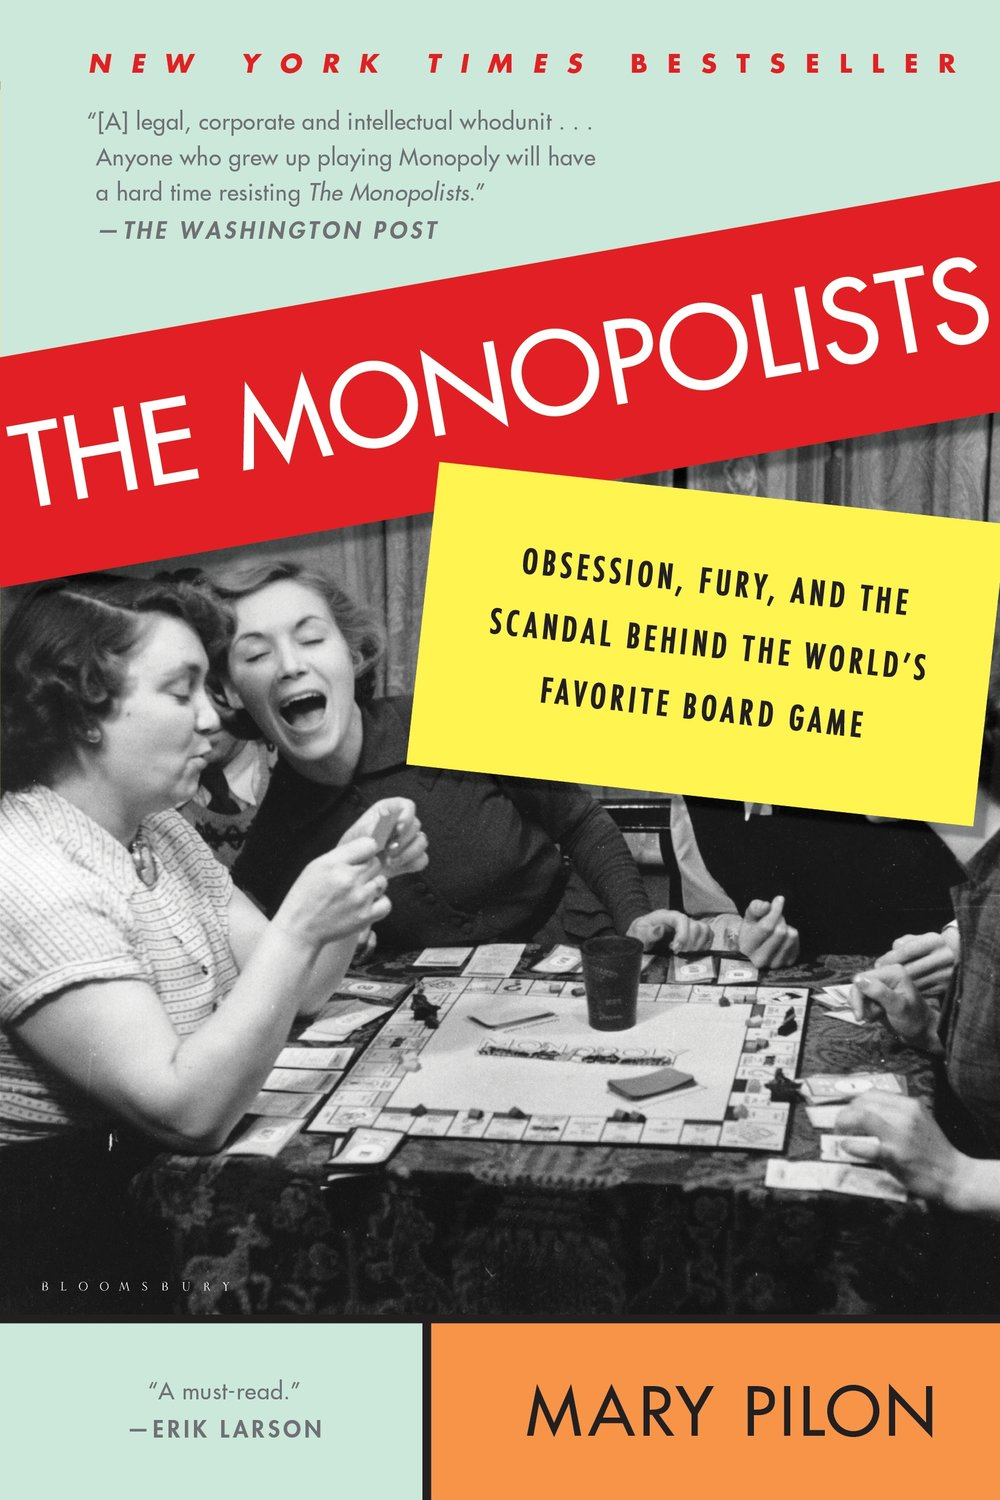 Book jacket, The Monopolists, by Mary Pilon